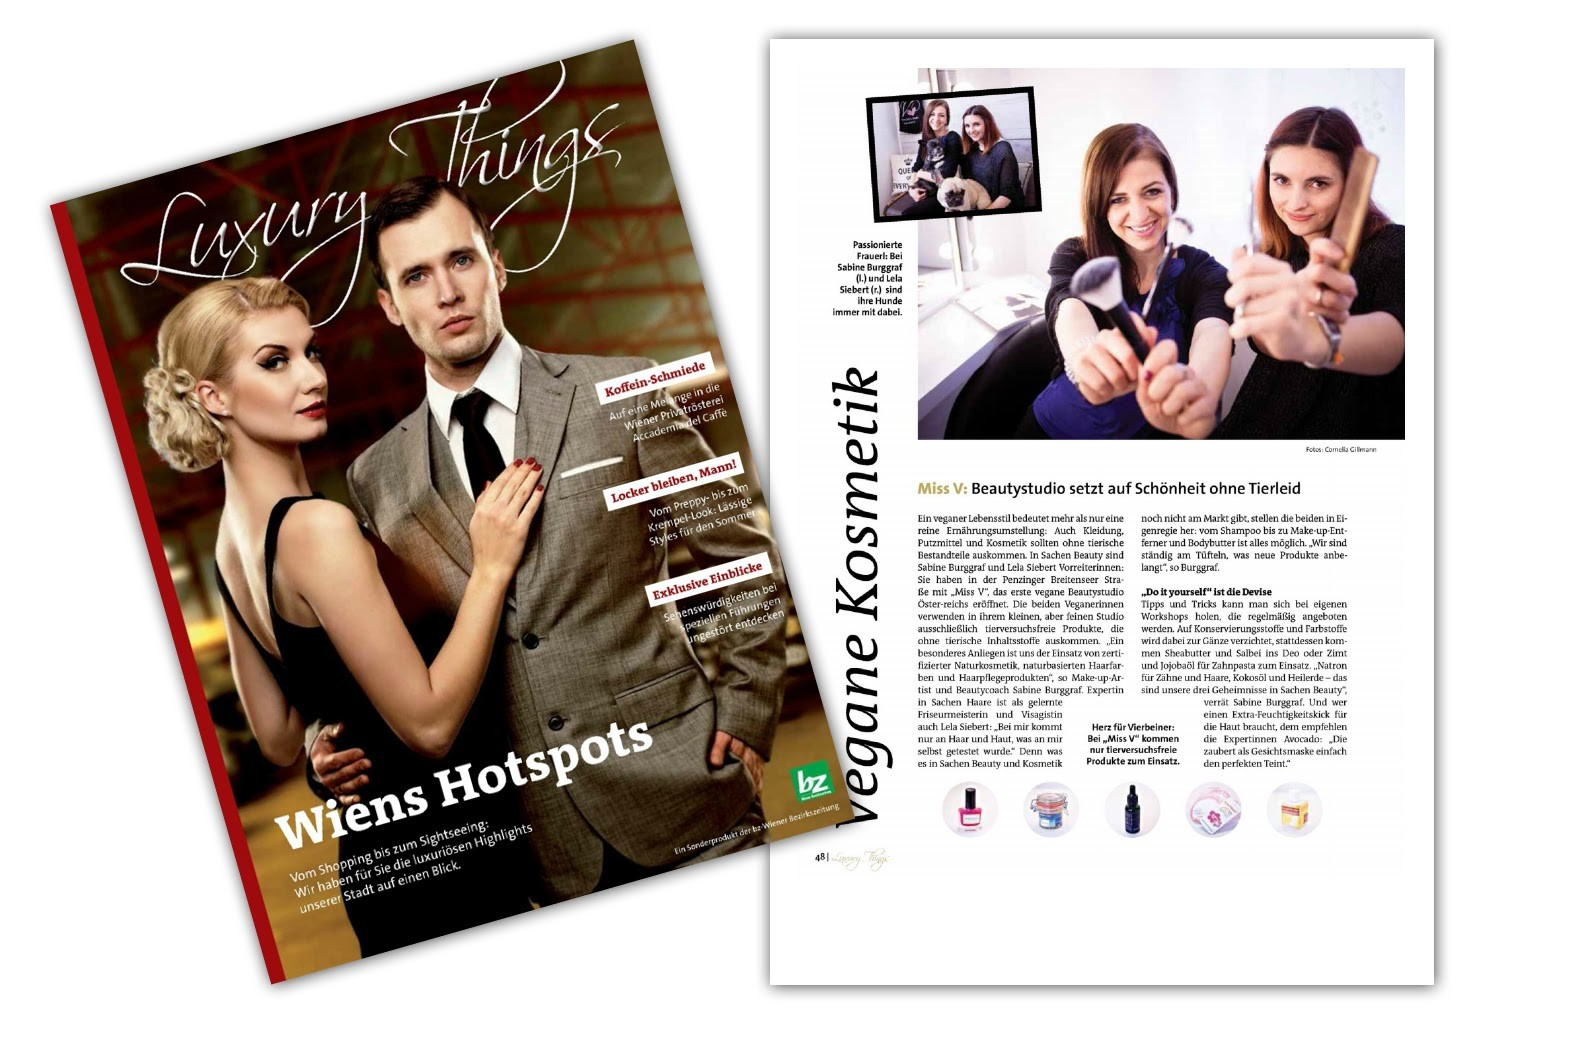 Luxury Things | Bezirkszeitung | Mai 2015 - www.meinbezirk.at